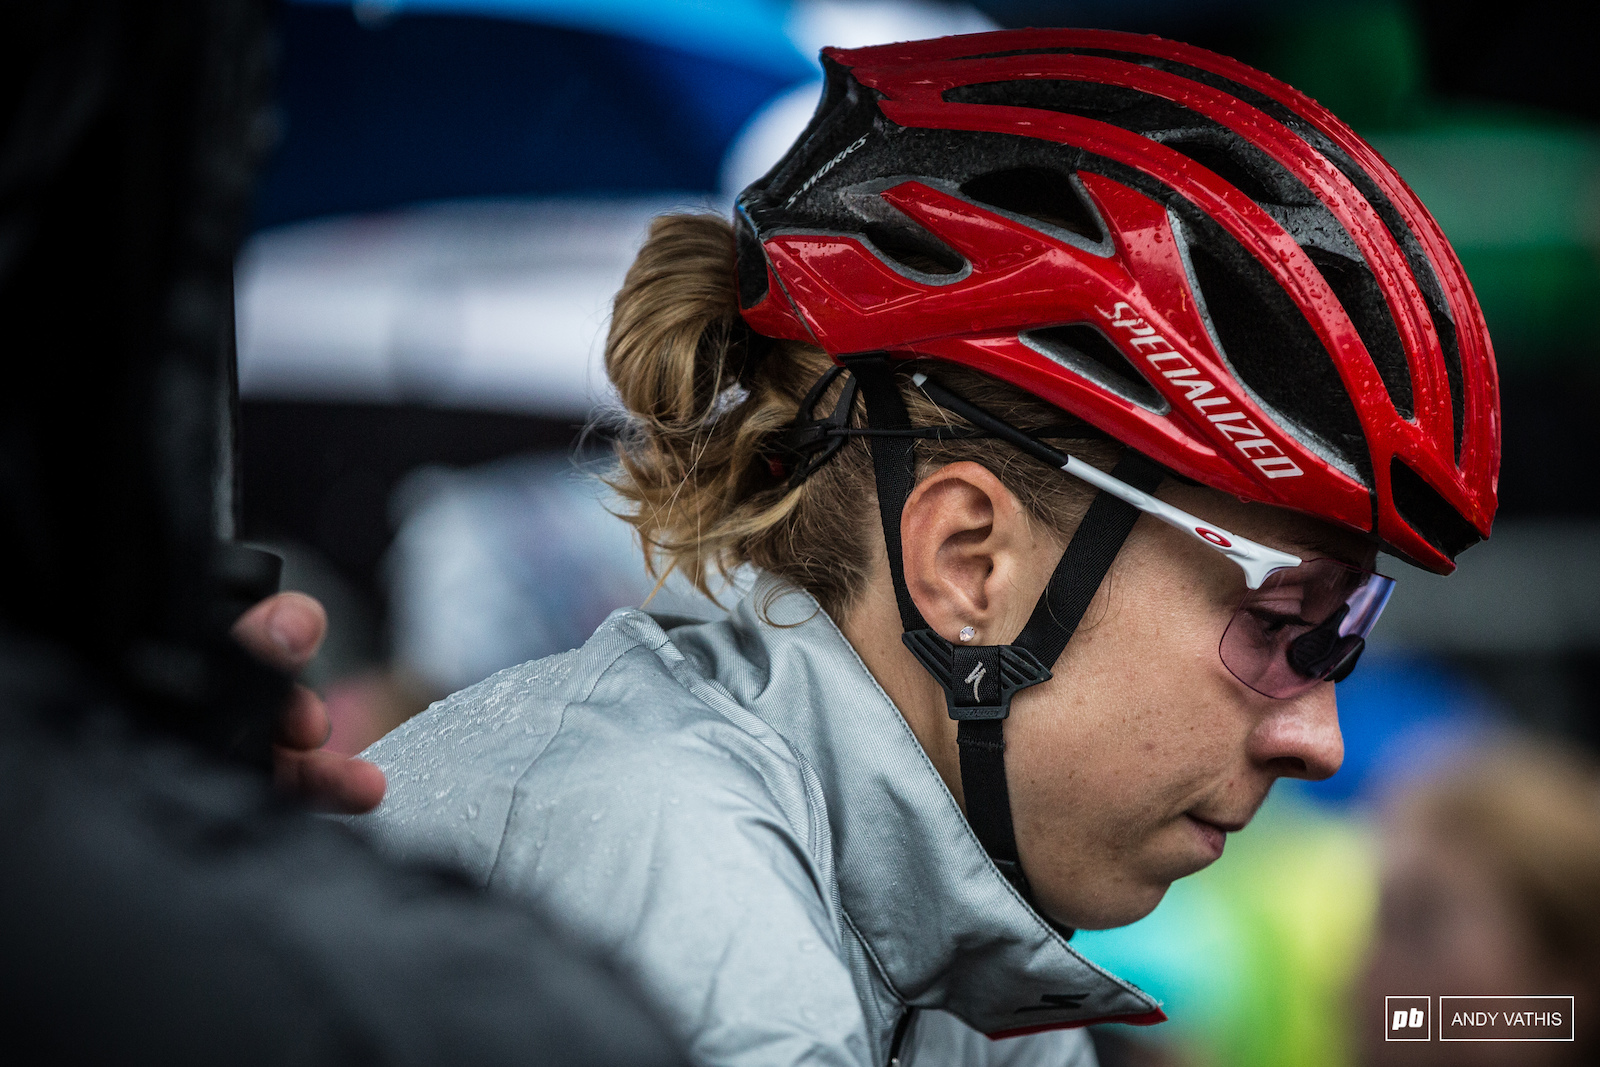 Annika Langvad is back from injury and ready to test herself in the worst conditions possible.